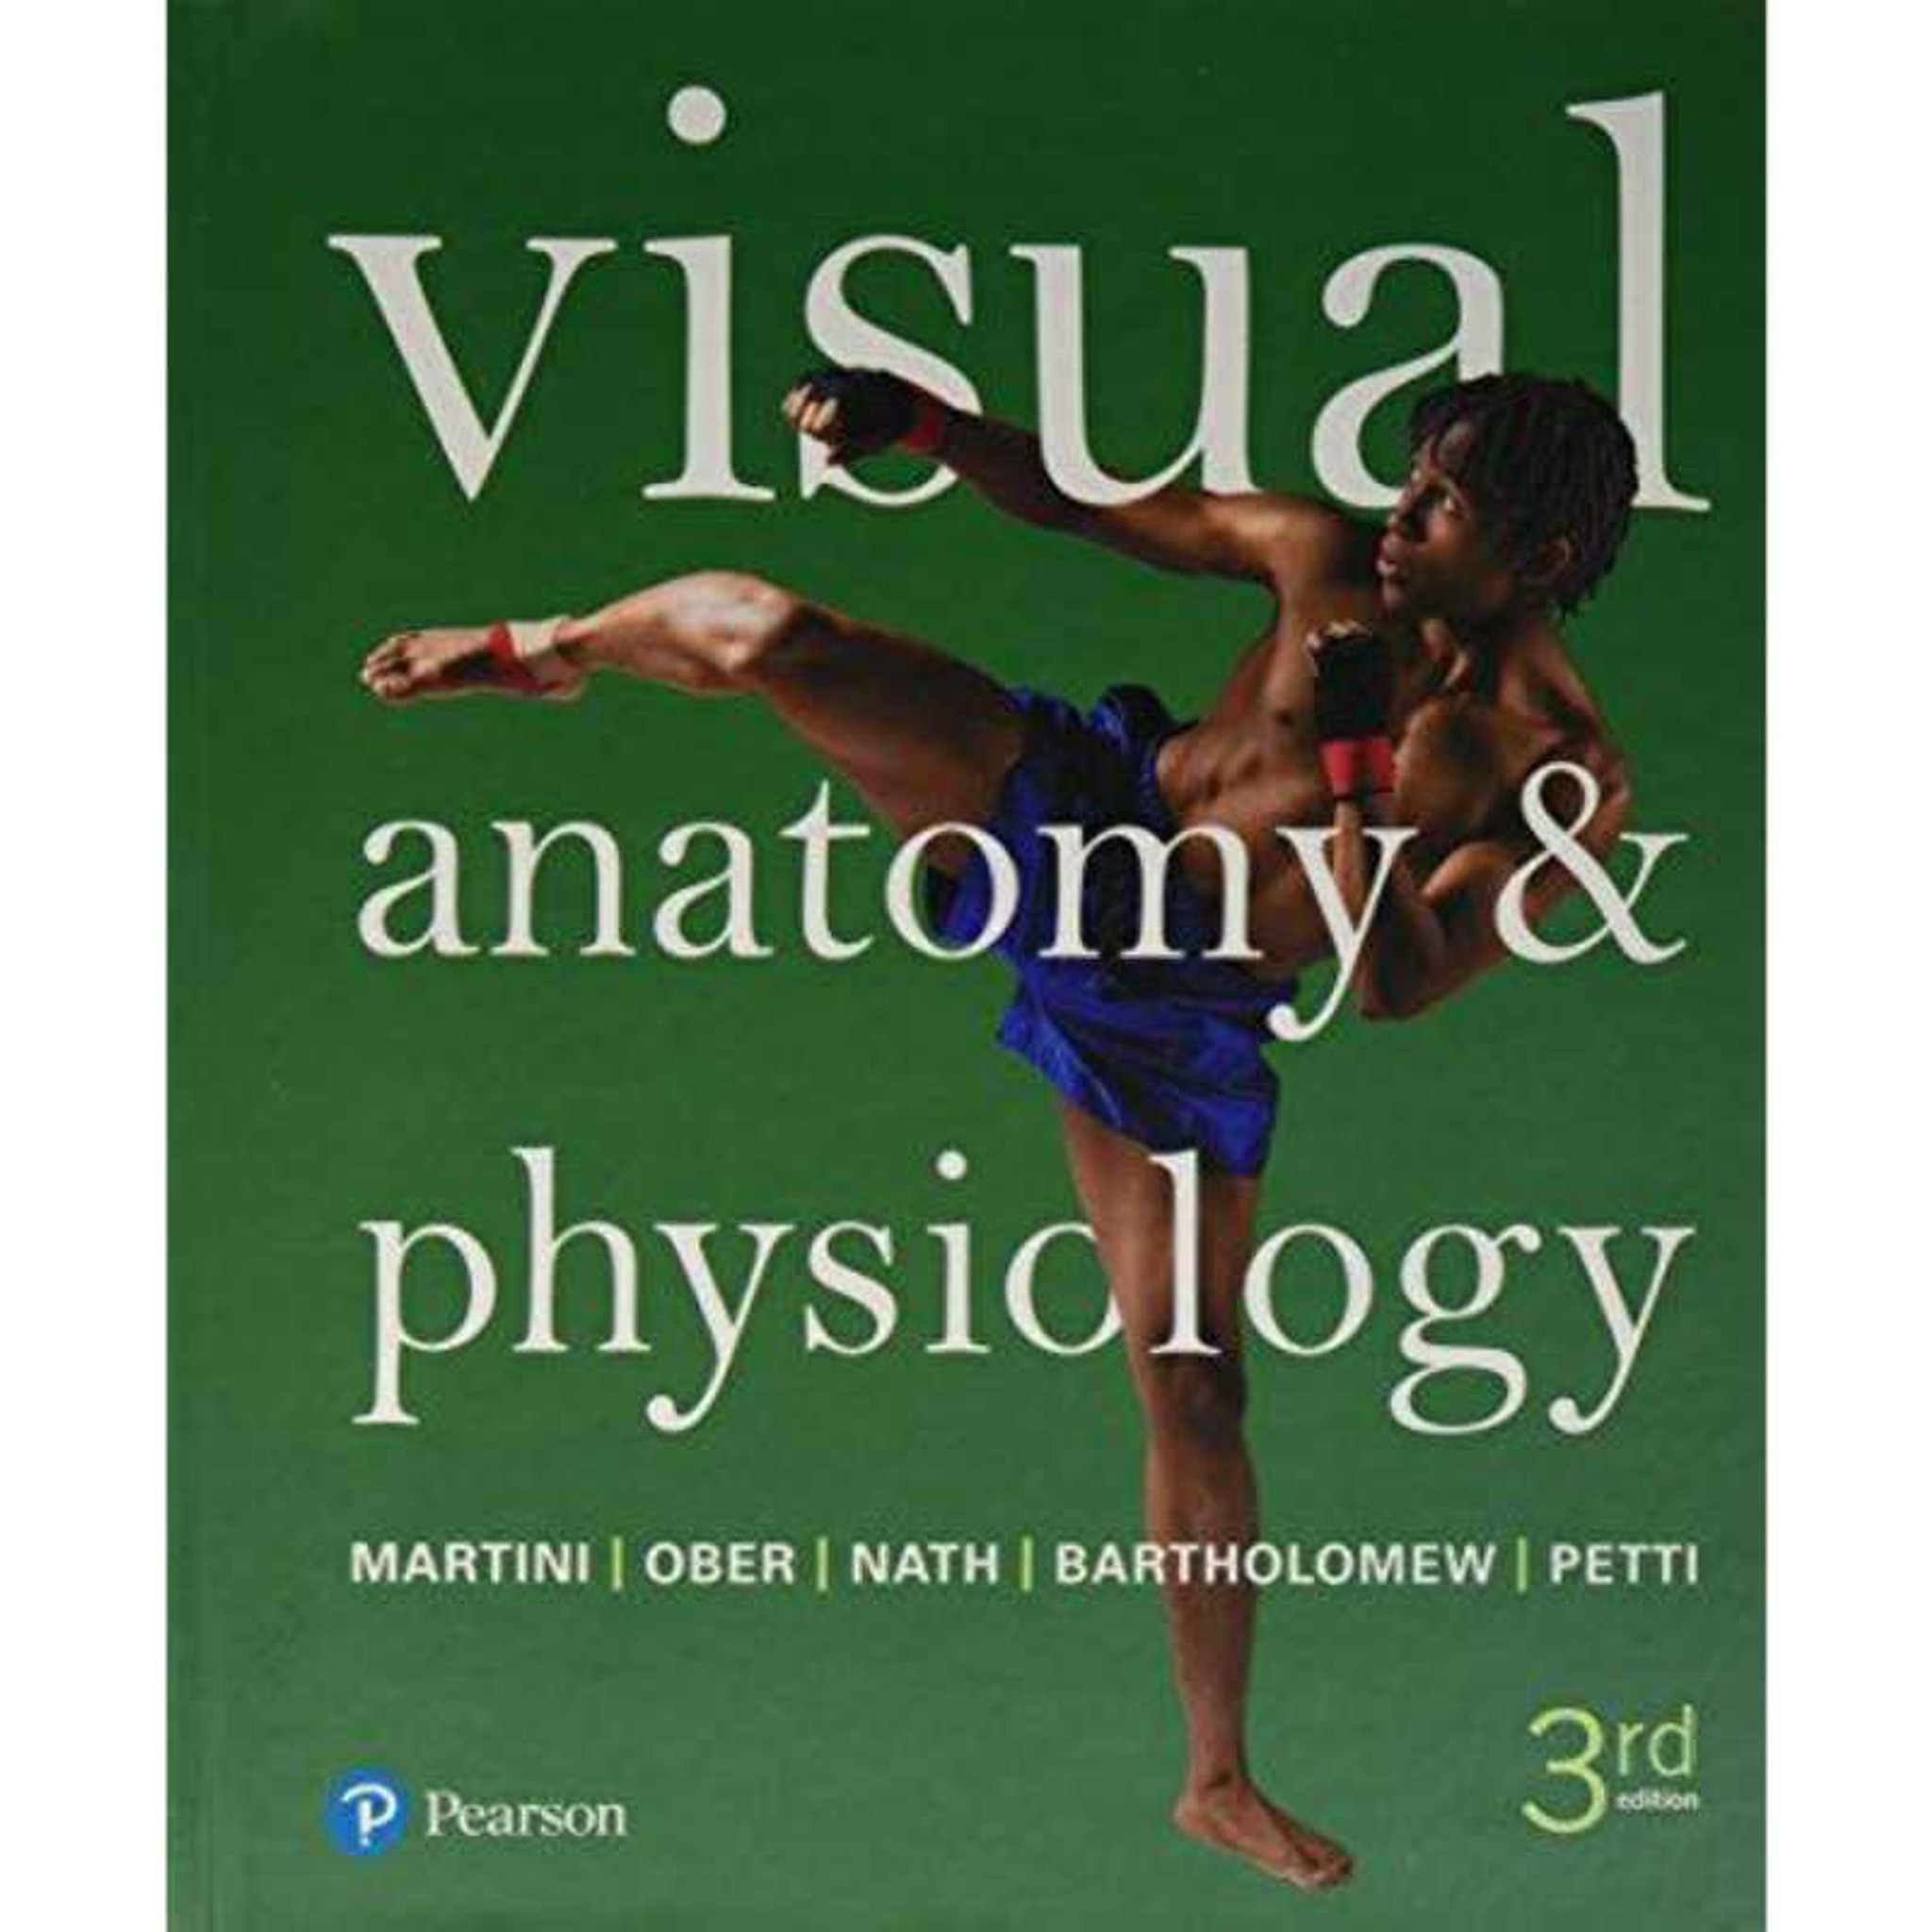 Visual Anatomy & Physiology (3rd Edition) Martini | 9780134394695